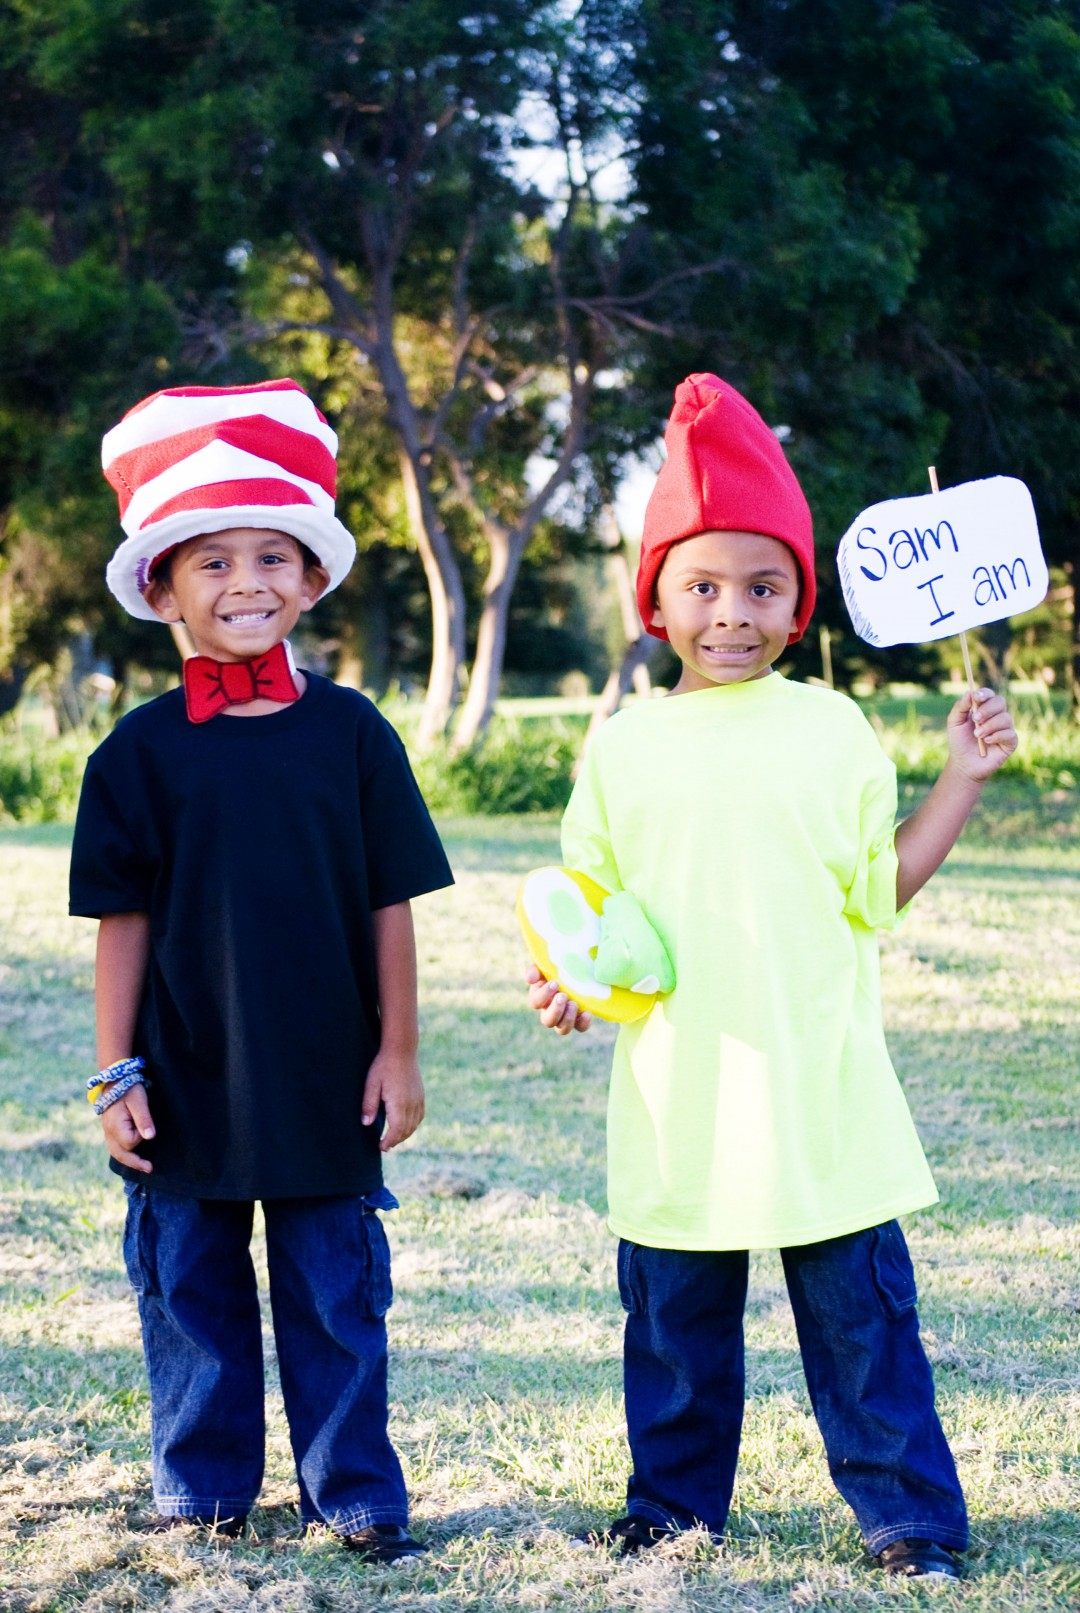 dr. seuss, cat in the hat, sam I am, green eggs and ham, quotes, dr. Seuss' birthday, diy costume, diy,